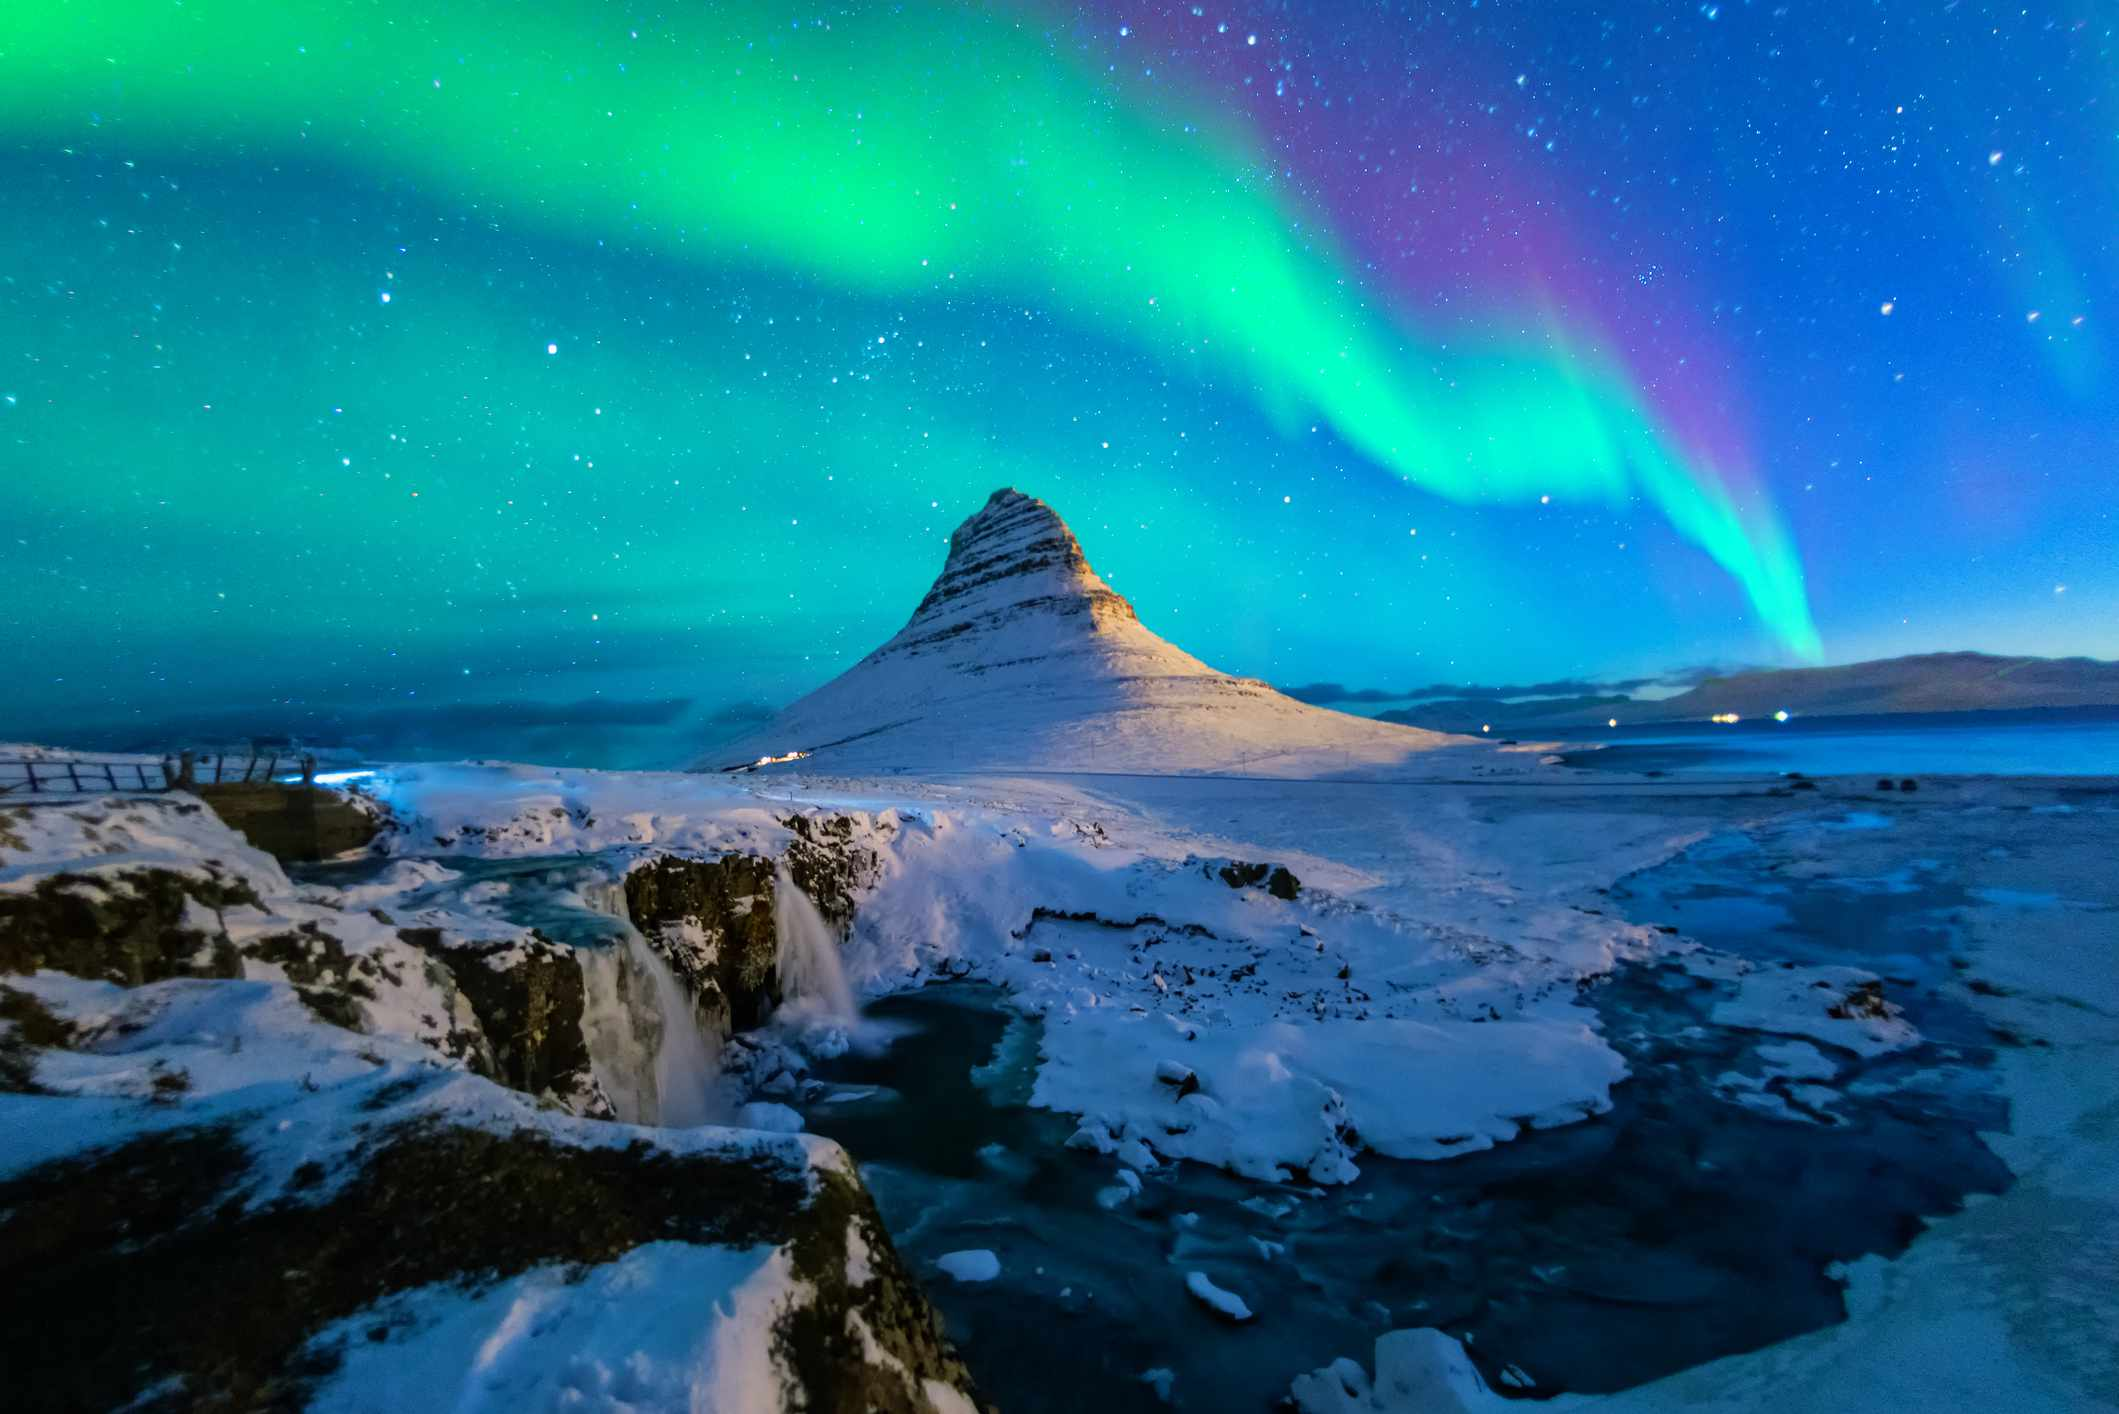 Multicolored northern lights over a snowy Mount Kirkjufell